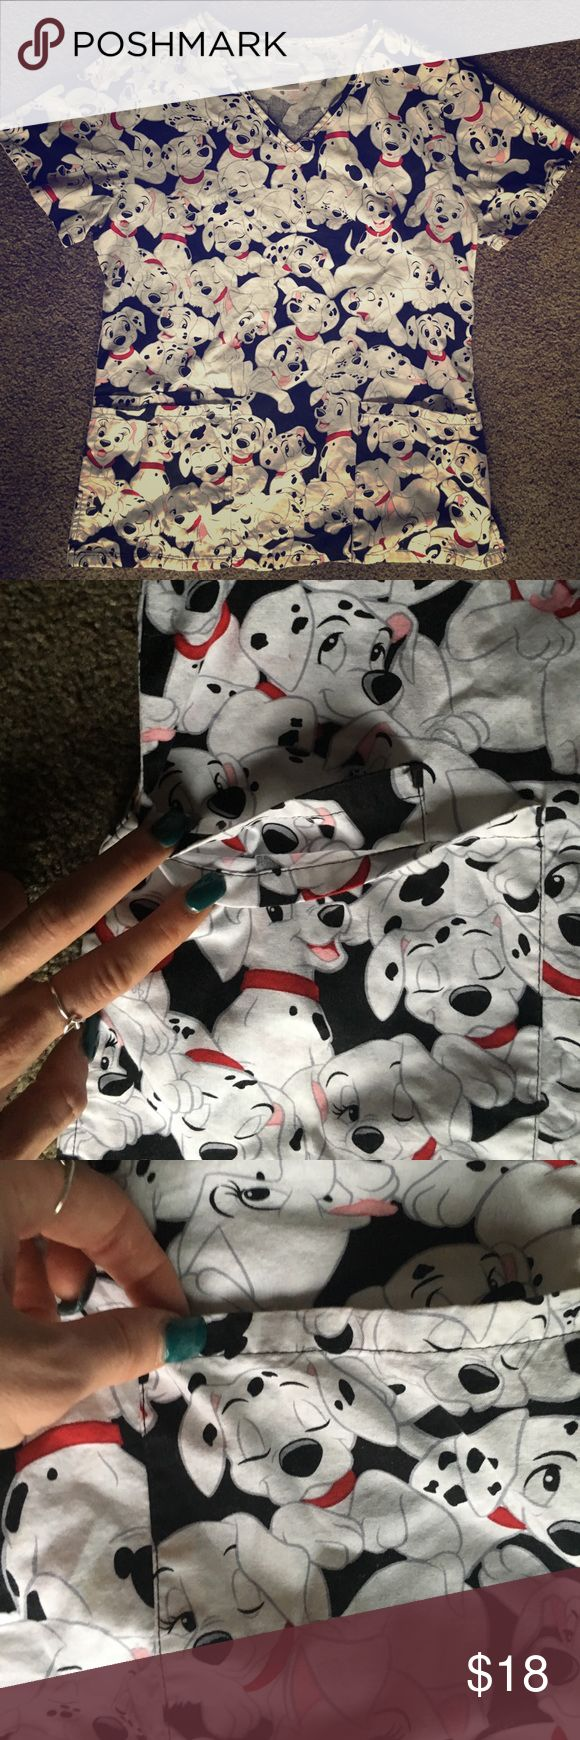 ❤️Disney Scrub Top❤️ Absolutely adorable 101 dalmations Disney Scrub top. Double pocket on one side single pocket on other in great cond. besides slight discoloration on puppy shown in last photo! This is a rare top and I hate to see it go but I do not wear any patterned scrubs anymore. My loss your gain!! ❤️❤️ Disney Other